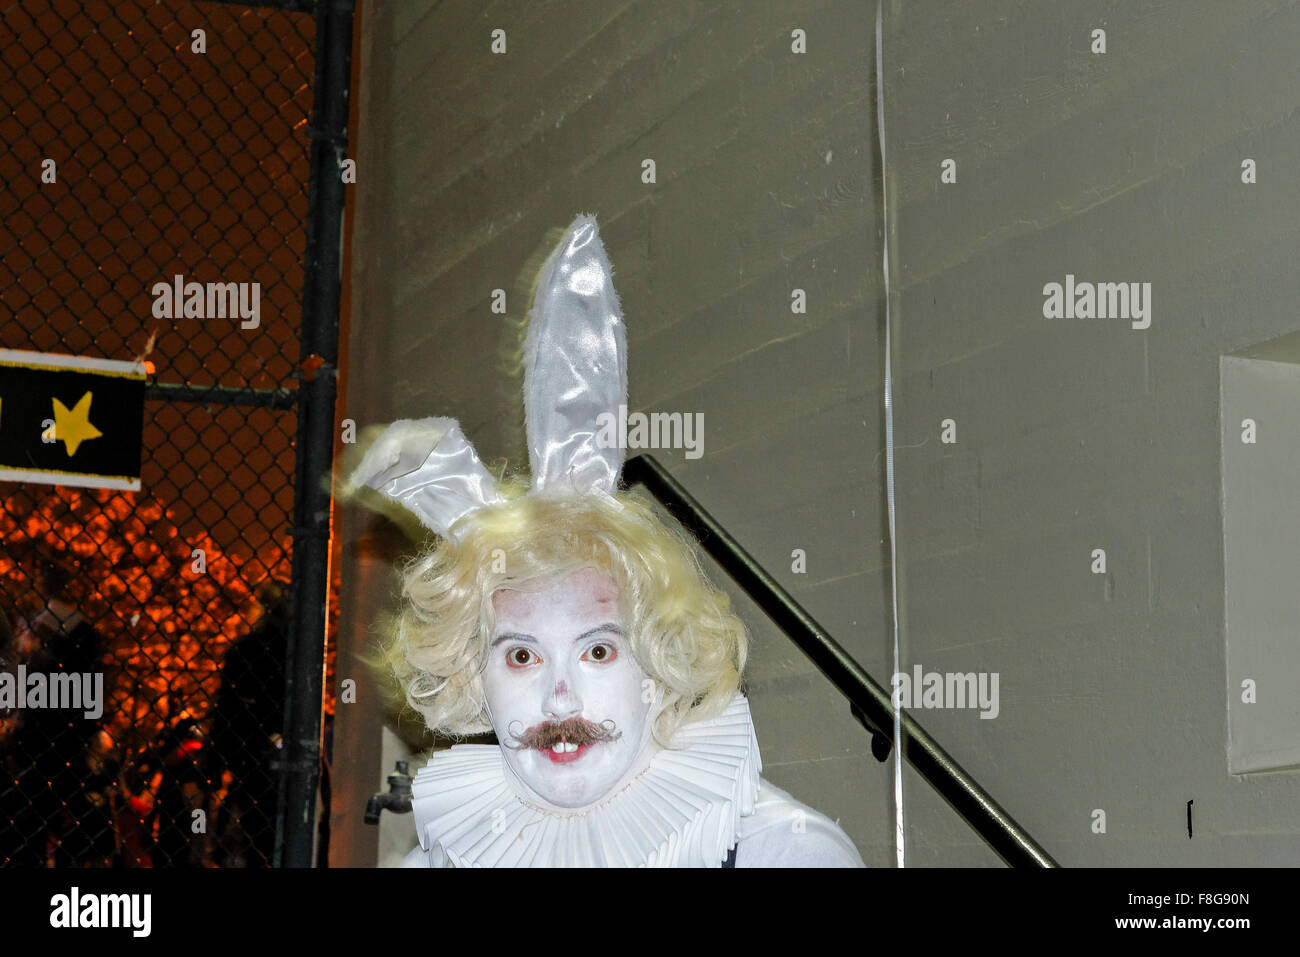 White rabbit, Parade of Lost Souls Festival 2014, Commercial Drive neighbourhood, Vancouver, British Columbia, Canada - Stock Image